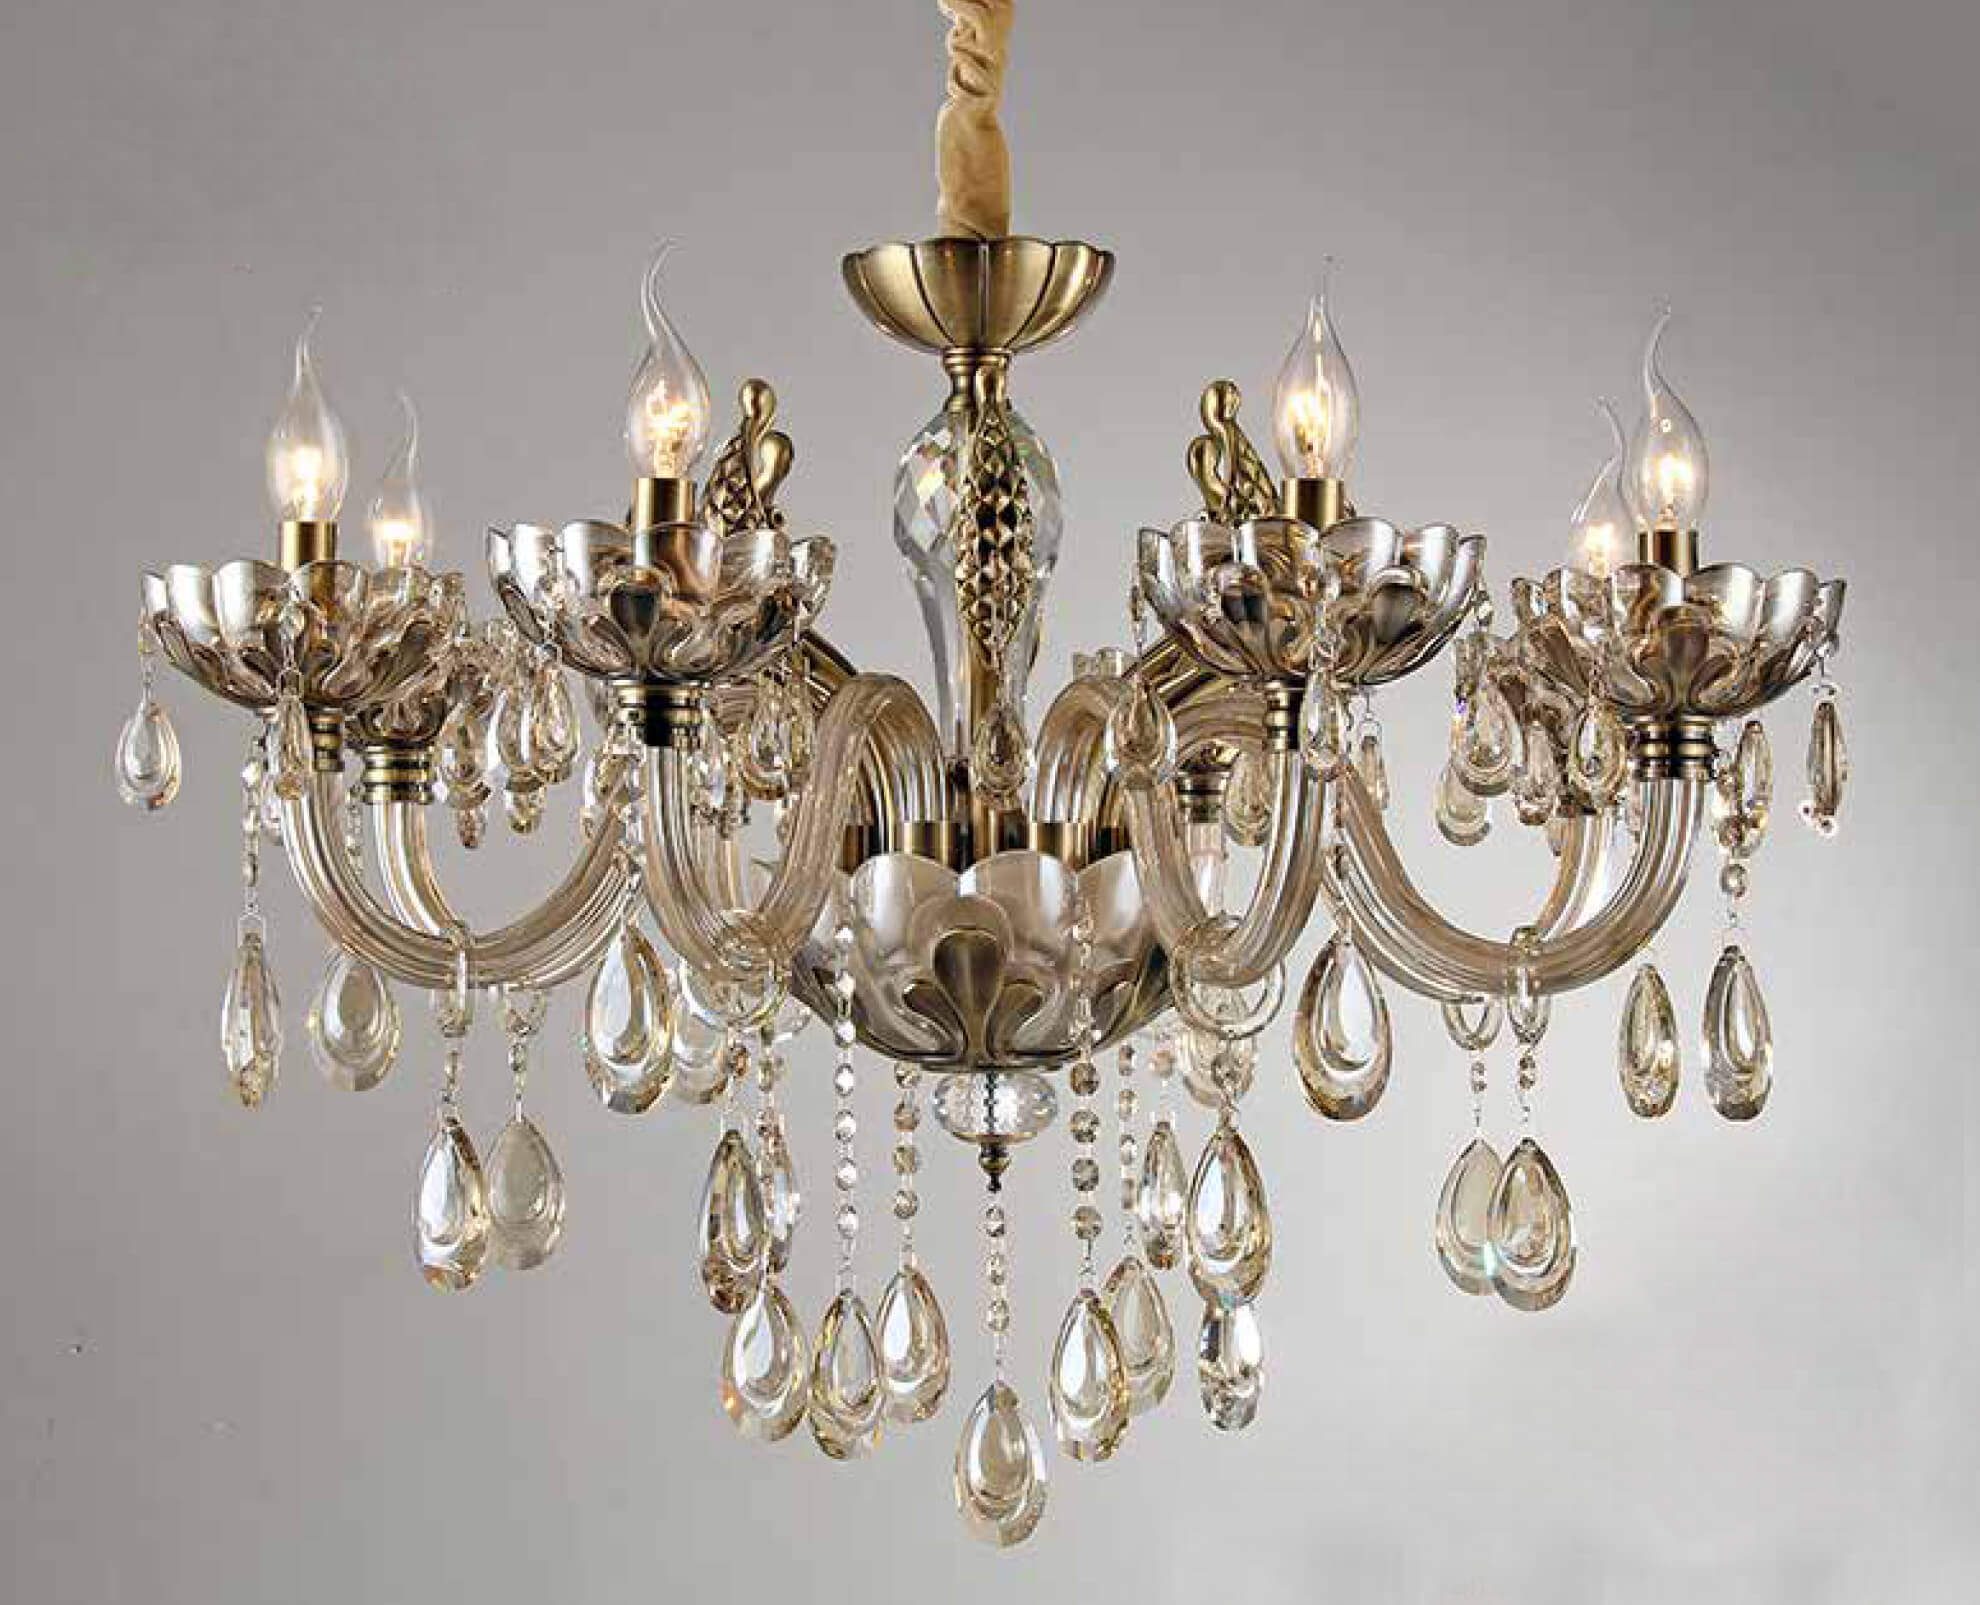 lighting chandelie manhattan pyrex adg country with feet coin club for h r al chandelier sh and uplights high contermporary led couture glass ball